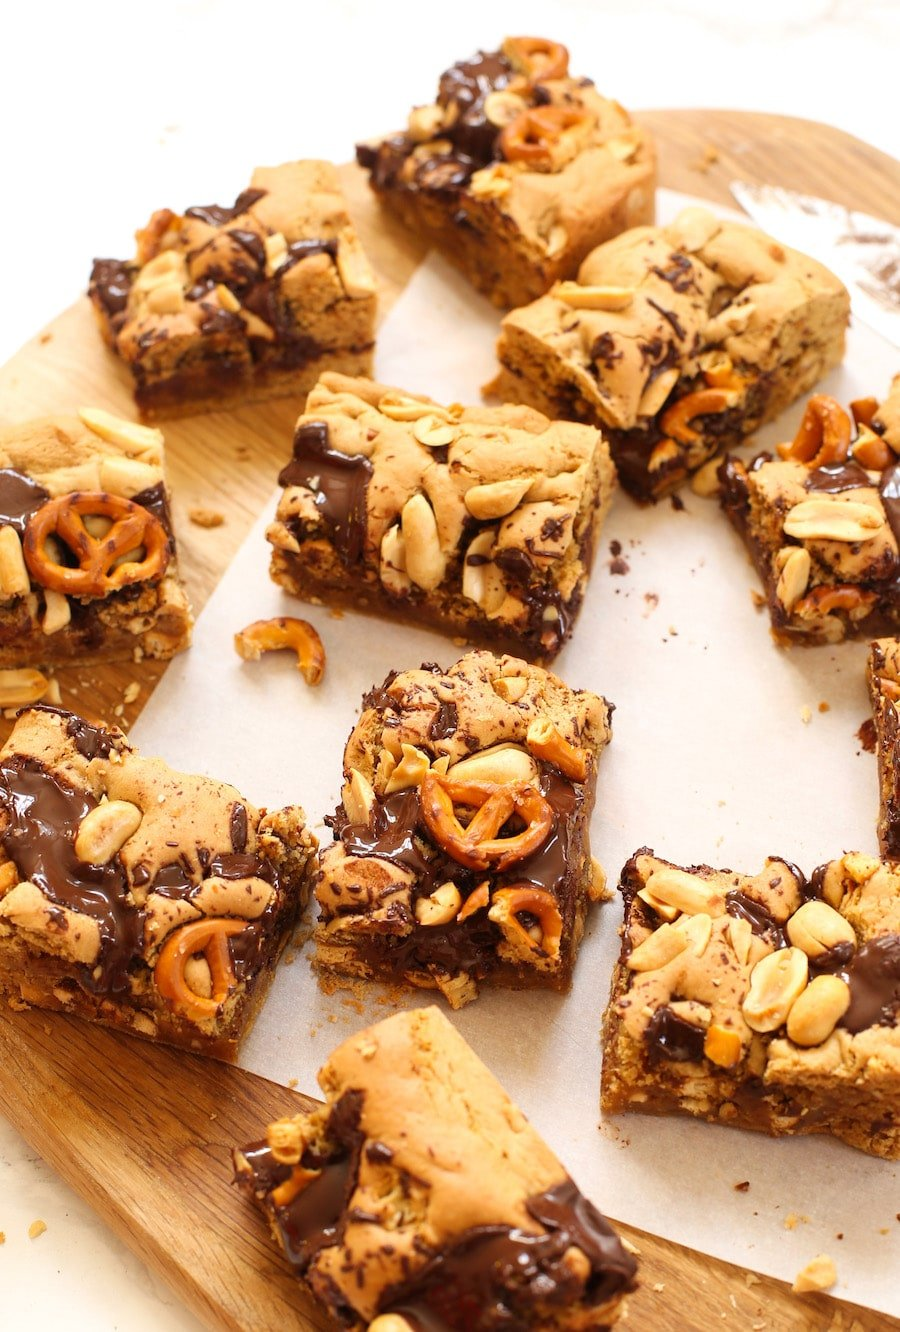 Sweet & salty gluten free cookie bars made with a peanut butter base and topped with chopped chocolate bits | Gluten Free + Dairy Free + Egg Free Vegan Option